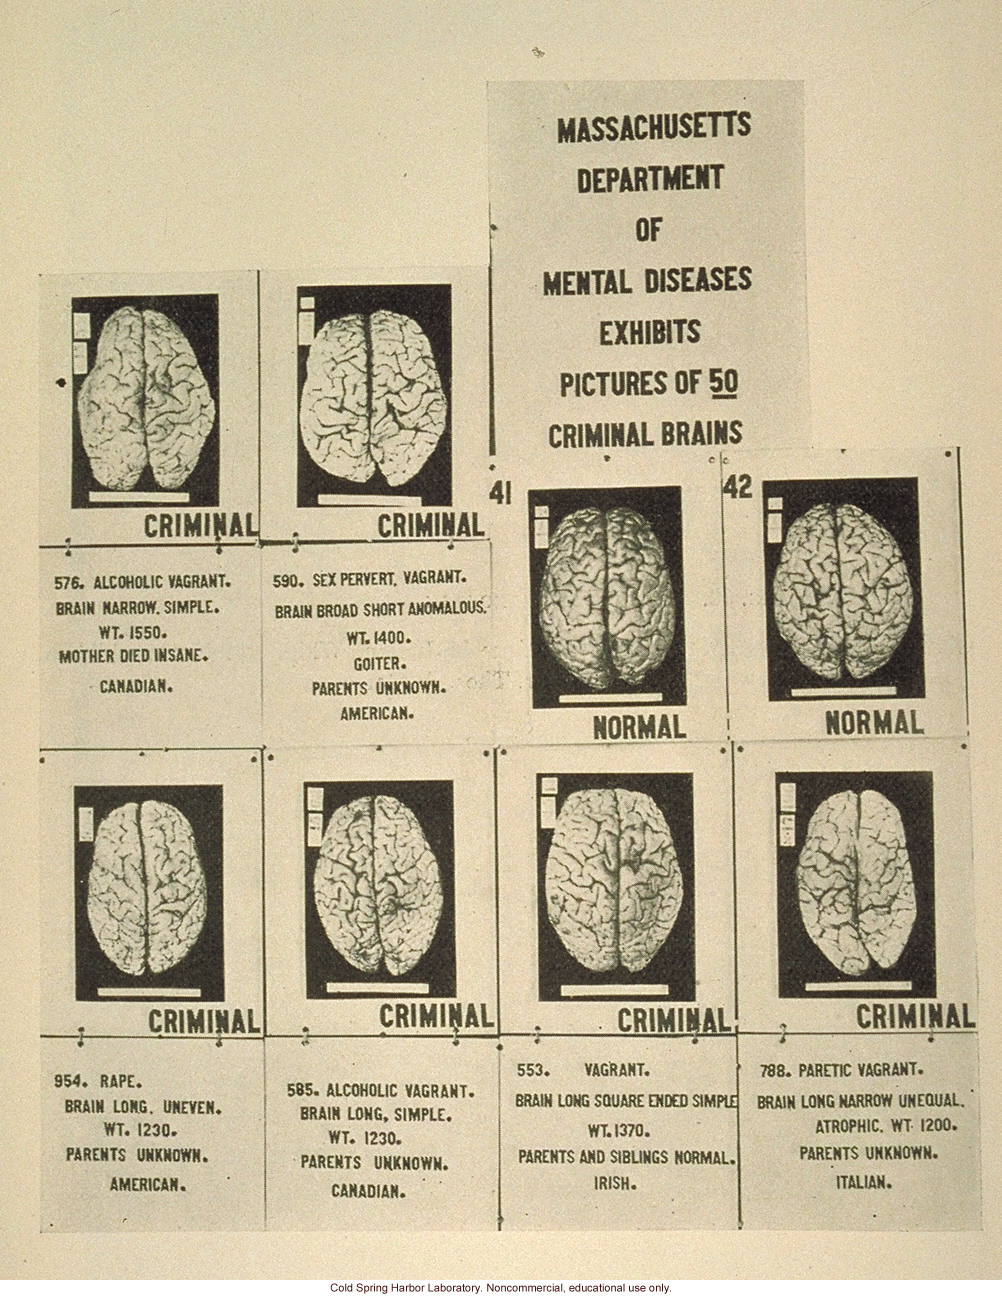 &quote;Massachusetts department of mental diseases exhibits pictures of 59 criminal brains&quote;